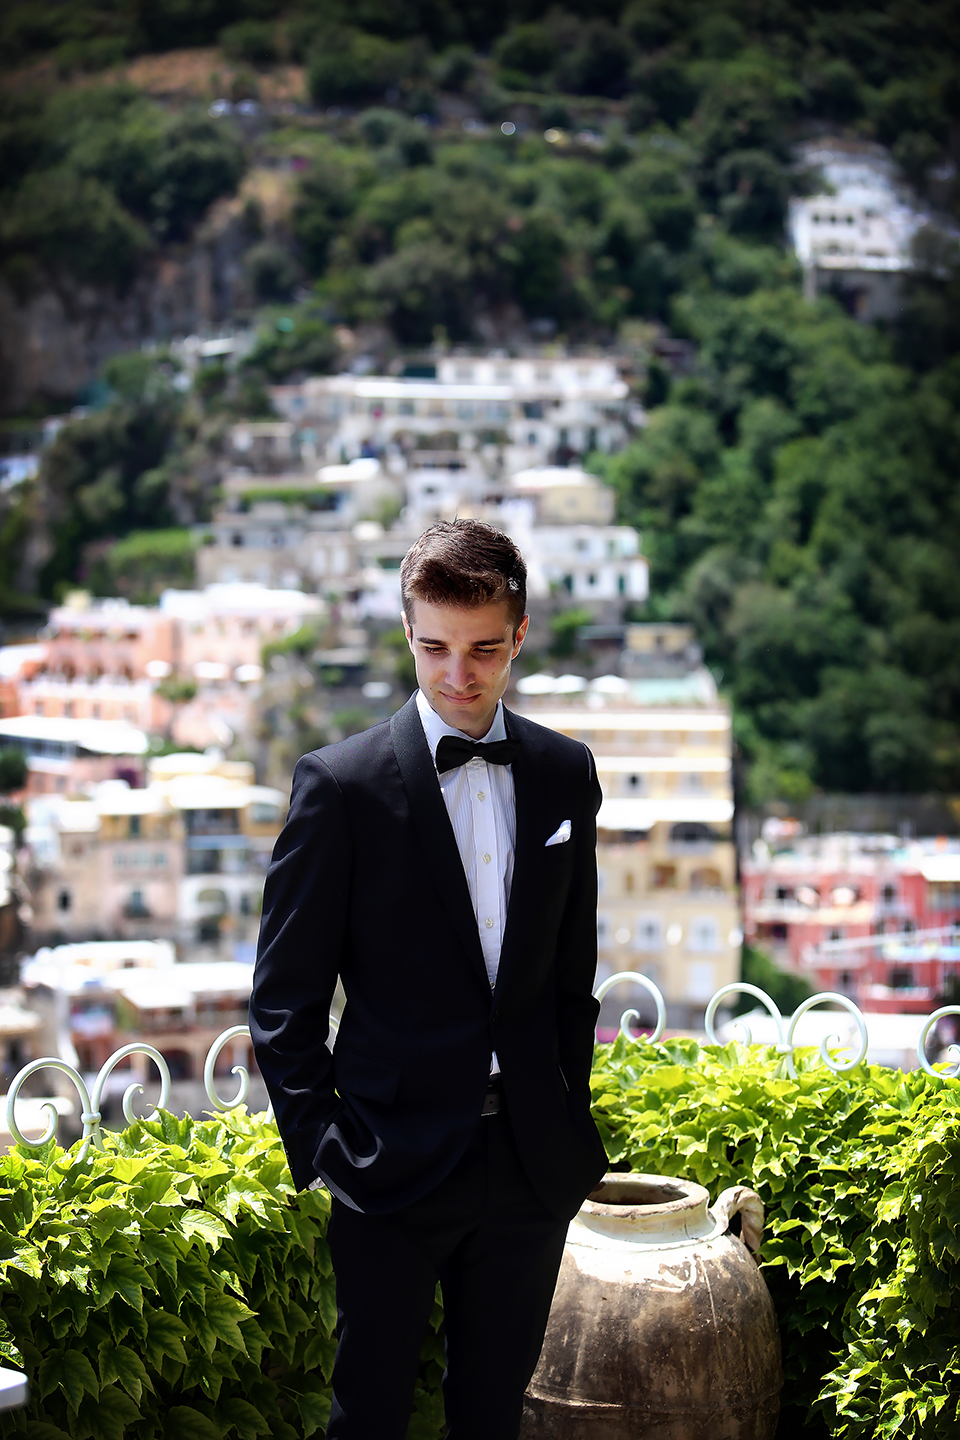 positano-weddin-photographers-italy-wedding-photographers-destination-wedding-photographers-estilo-best-wedding-photographers-in-the-world-casper-bosman-wedding-gown-wedding-style-stylish-modern-wedding-photography-023.jpg